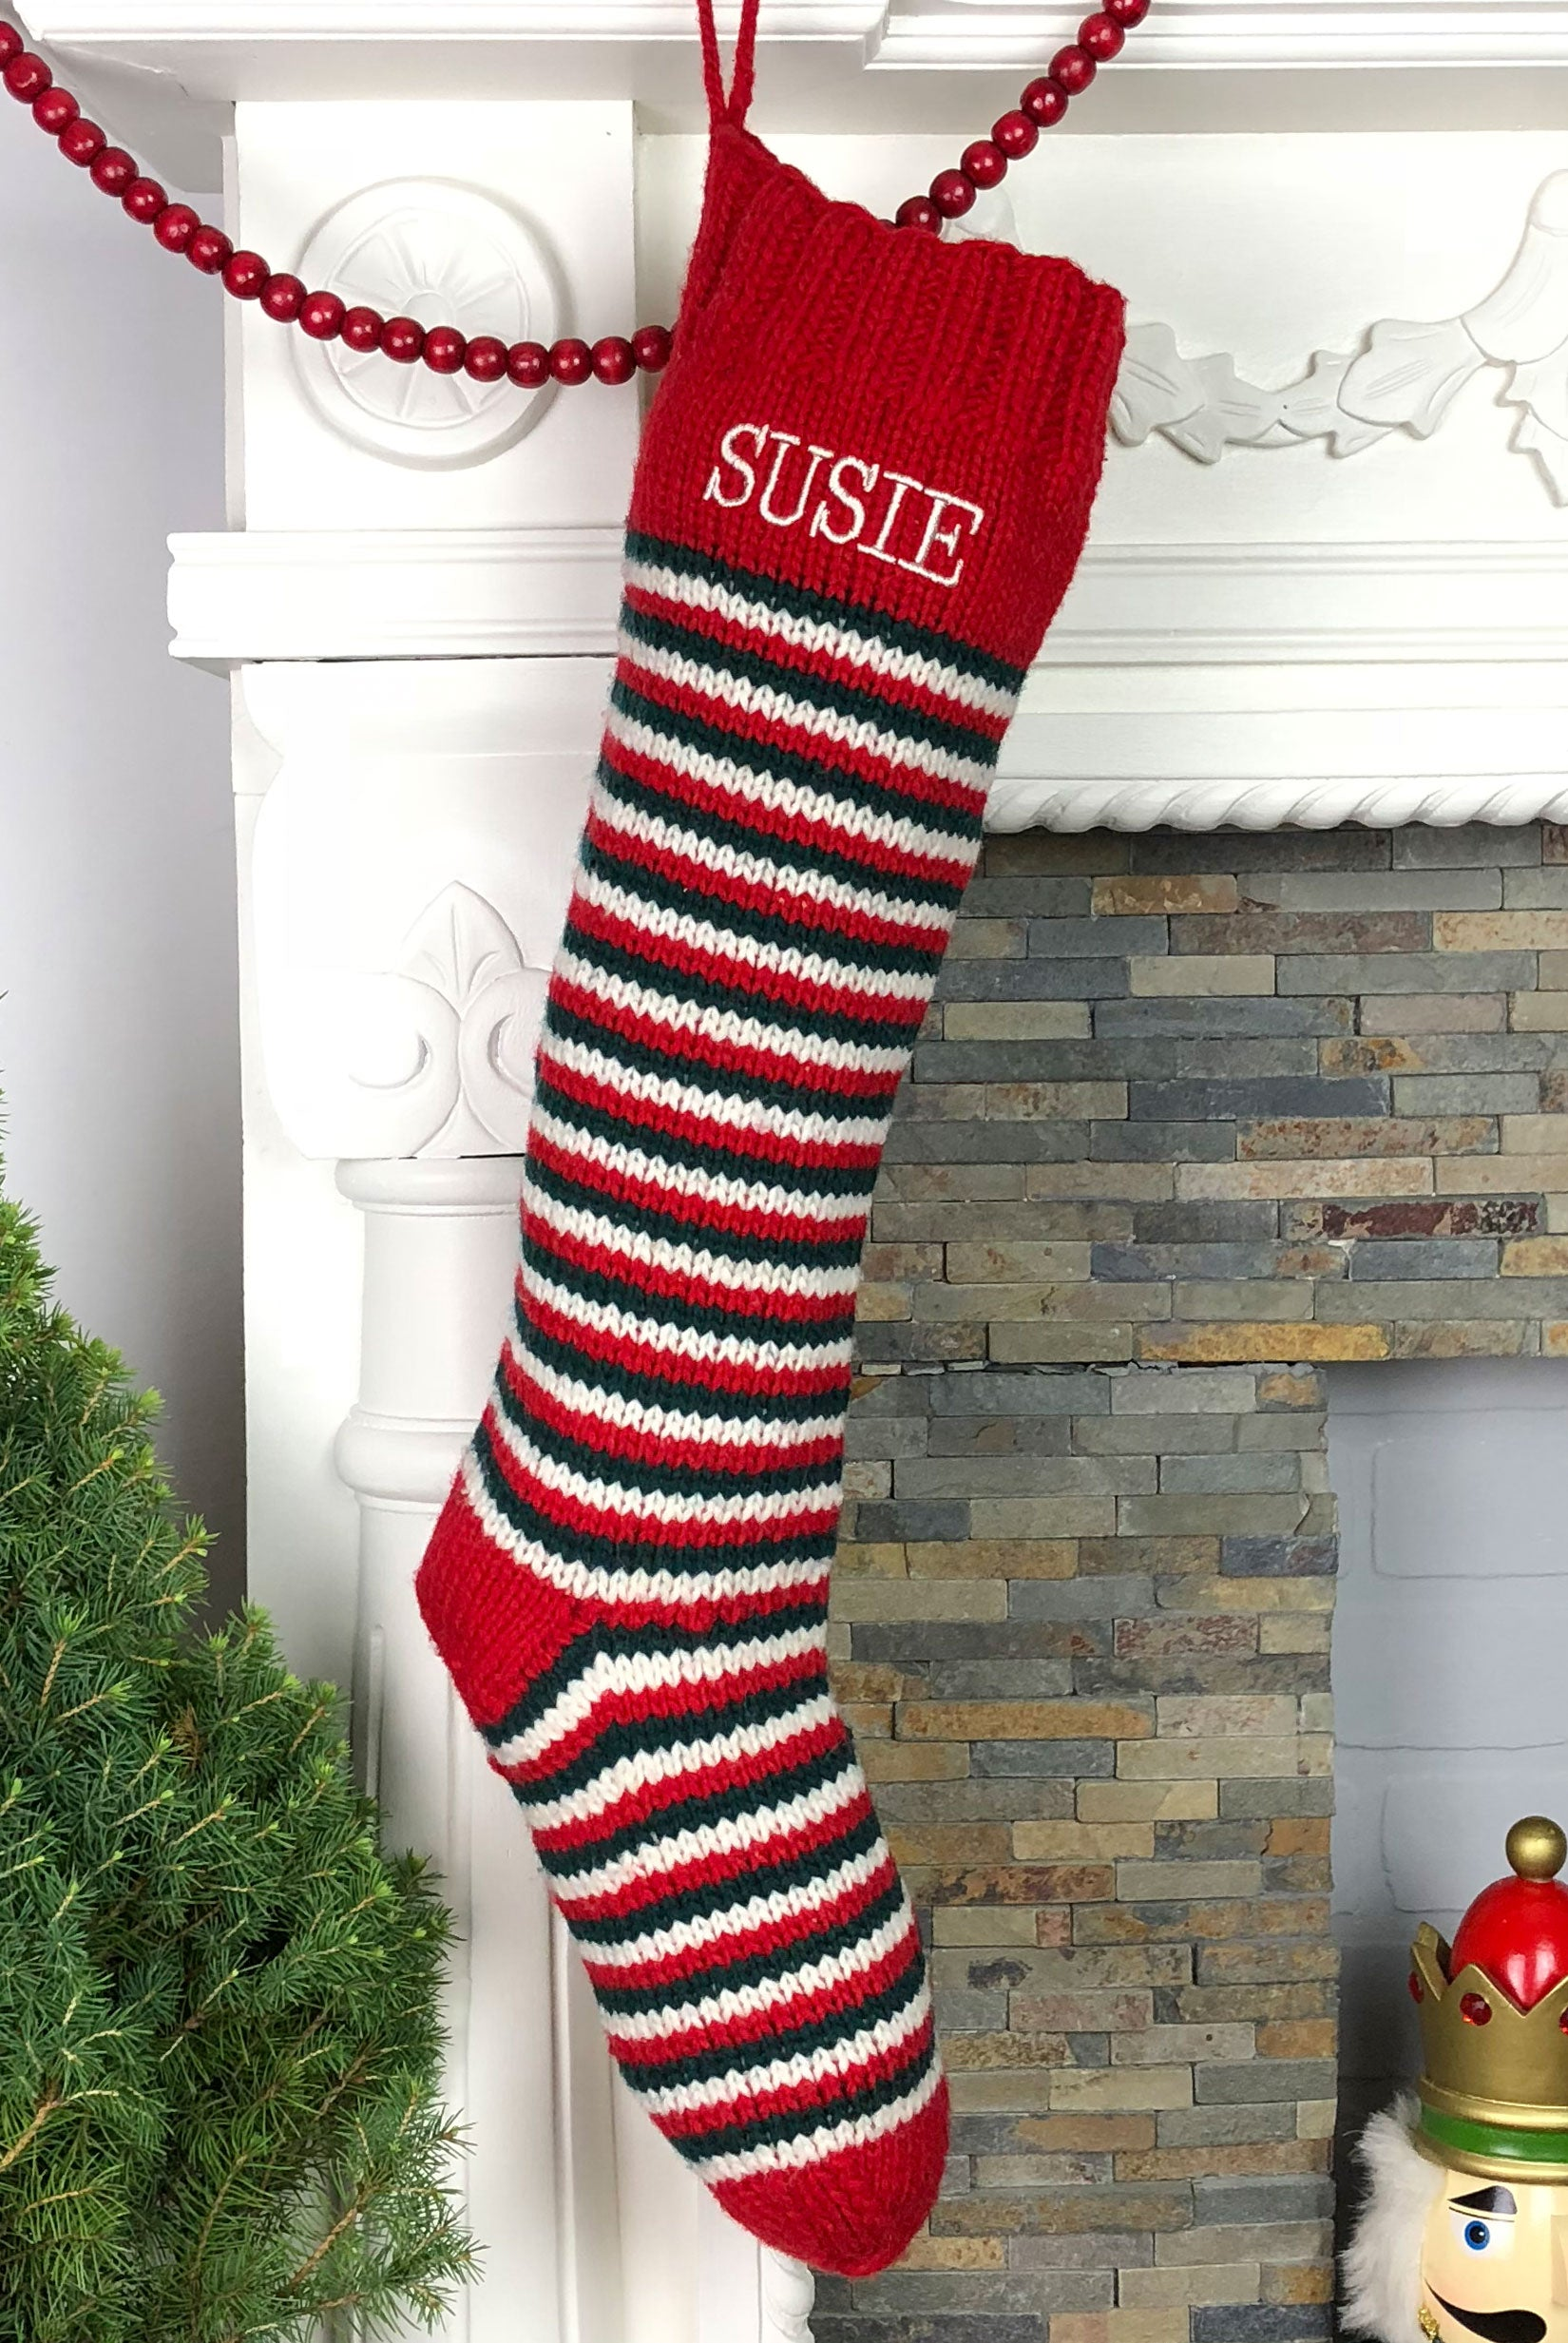 striped personalized christmas stocking striped personalized christmas stocking red white - Red And White Christmas Stockings